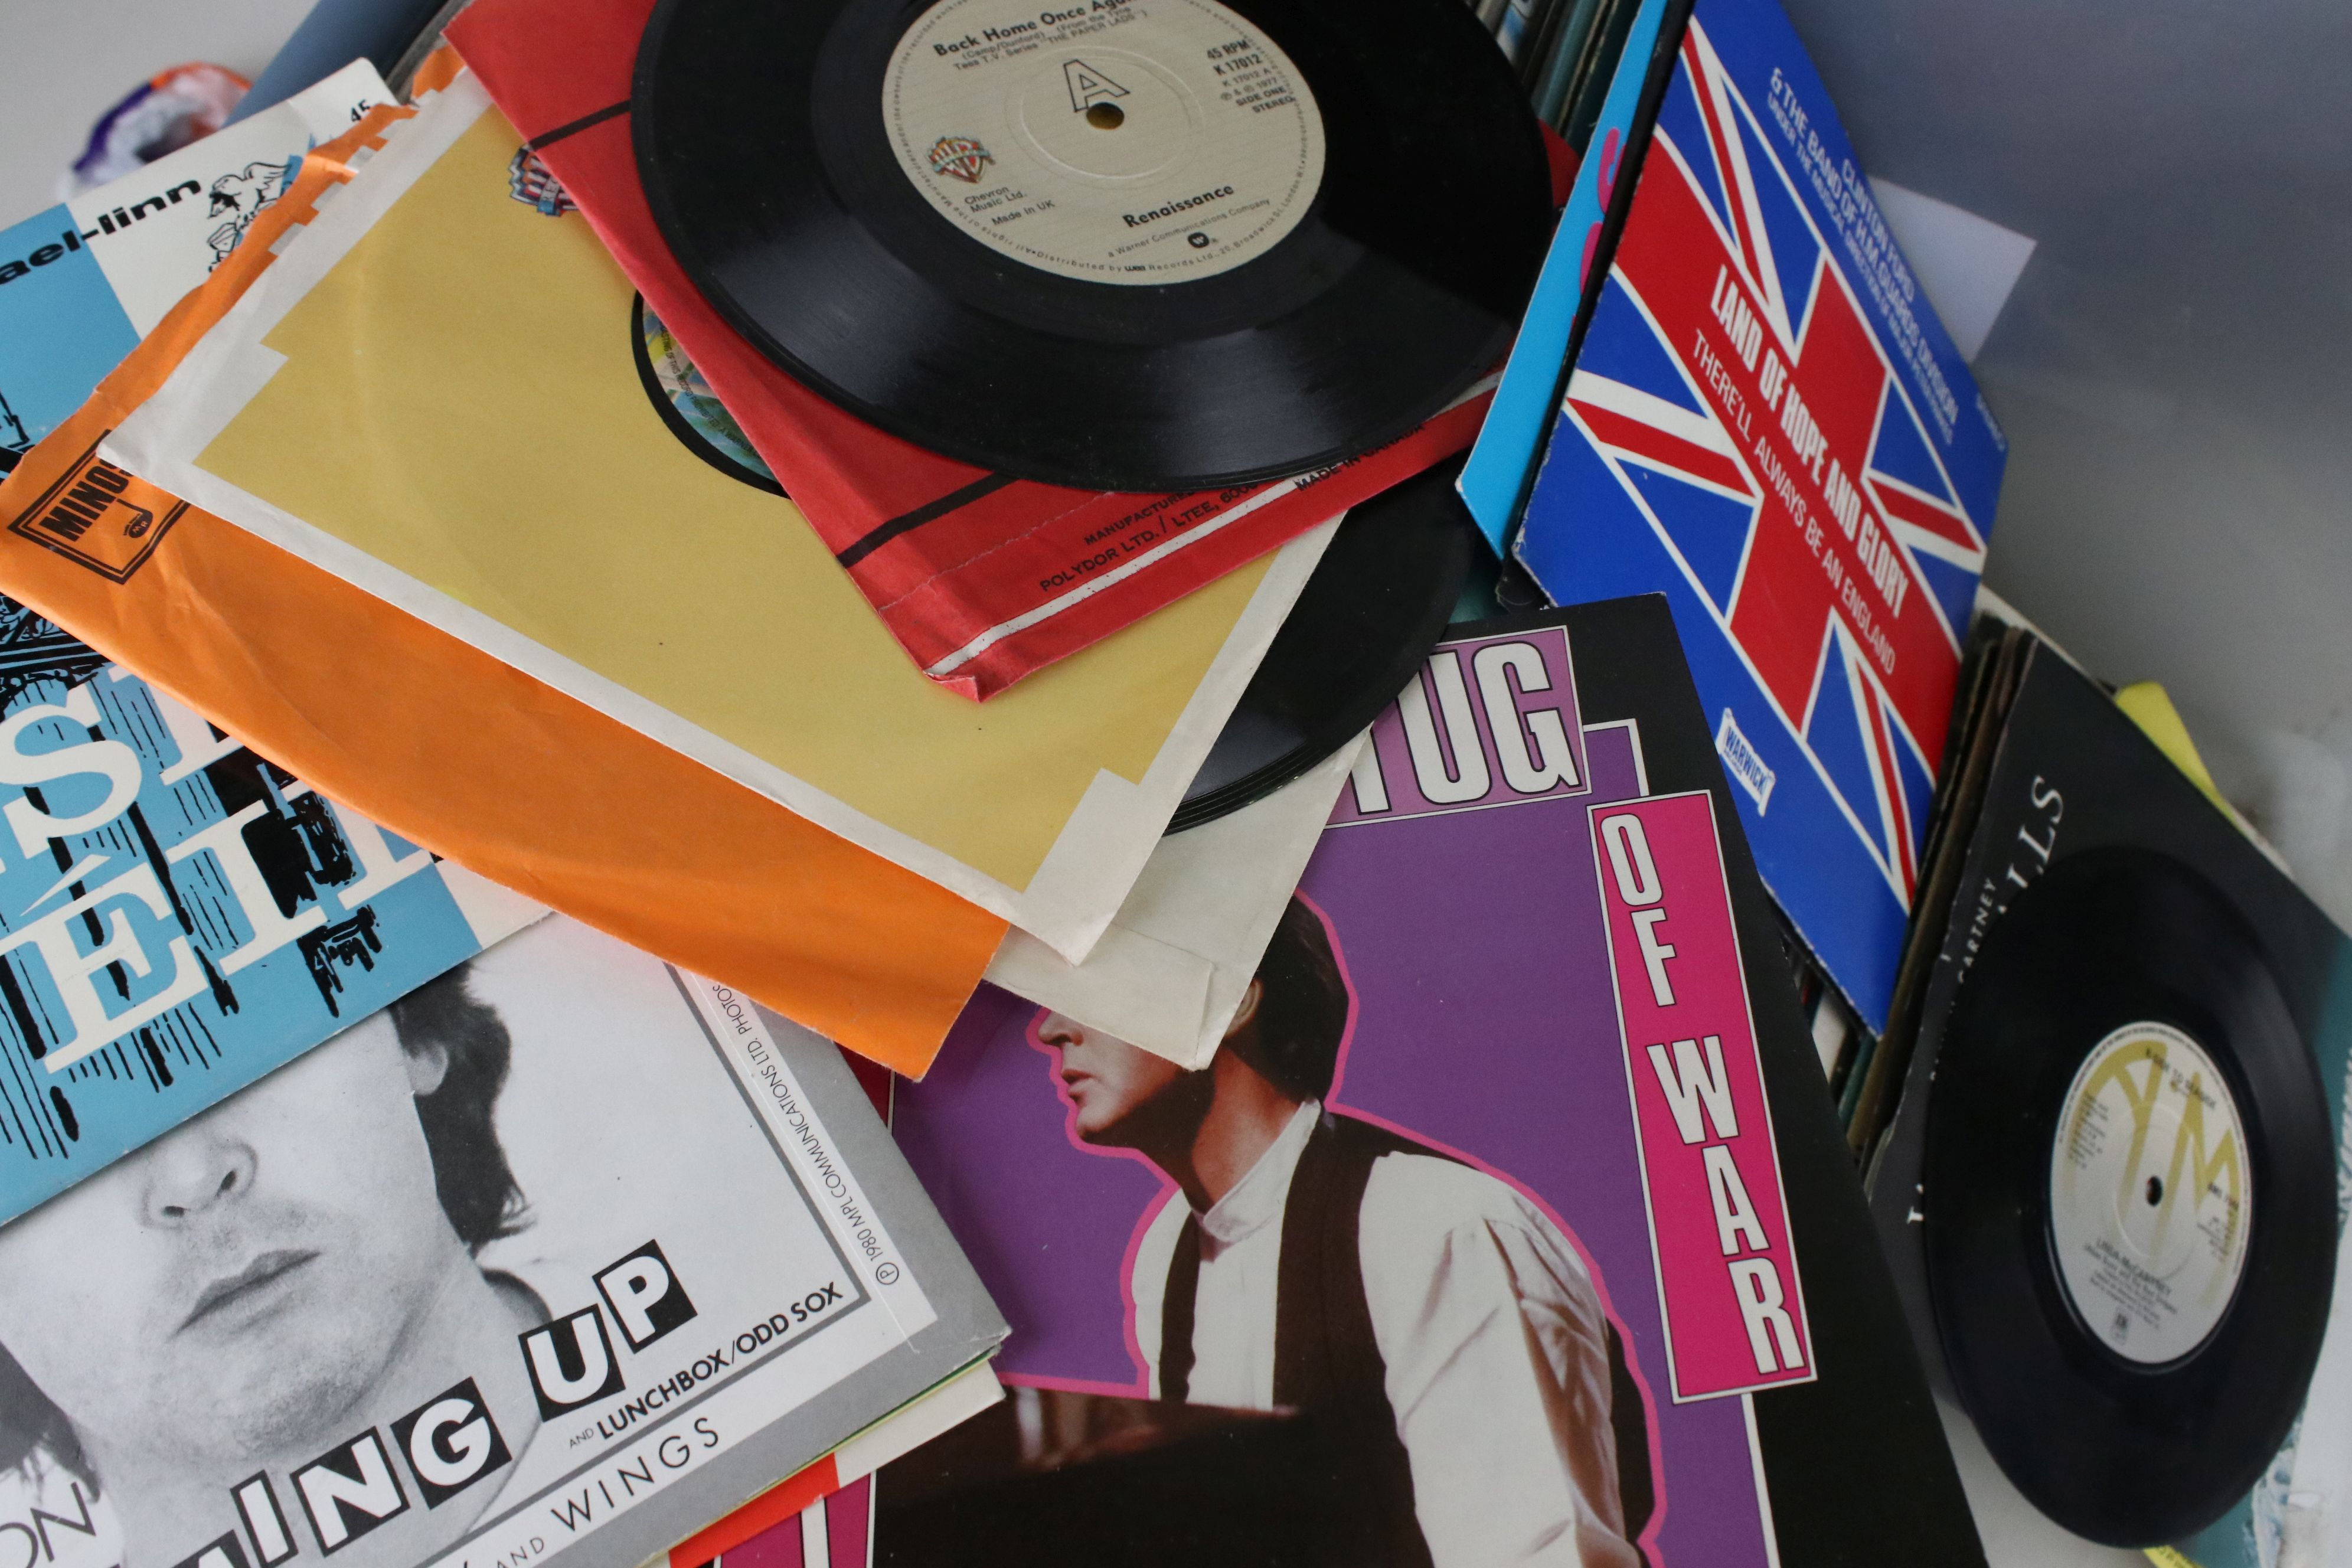 """Vinyl - Around 60 Pop and Rock LPs to include some 7"""" singles, artists feature The Eagles, ELP, Mike - Image 2 of 12"""